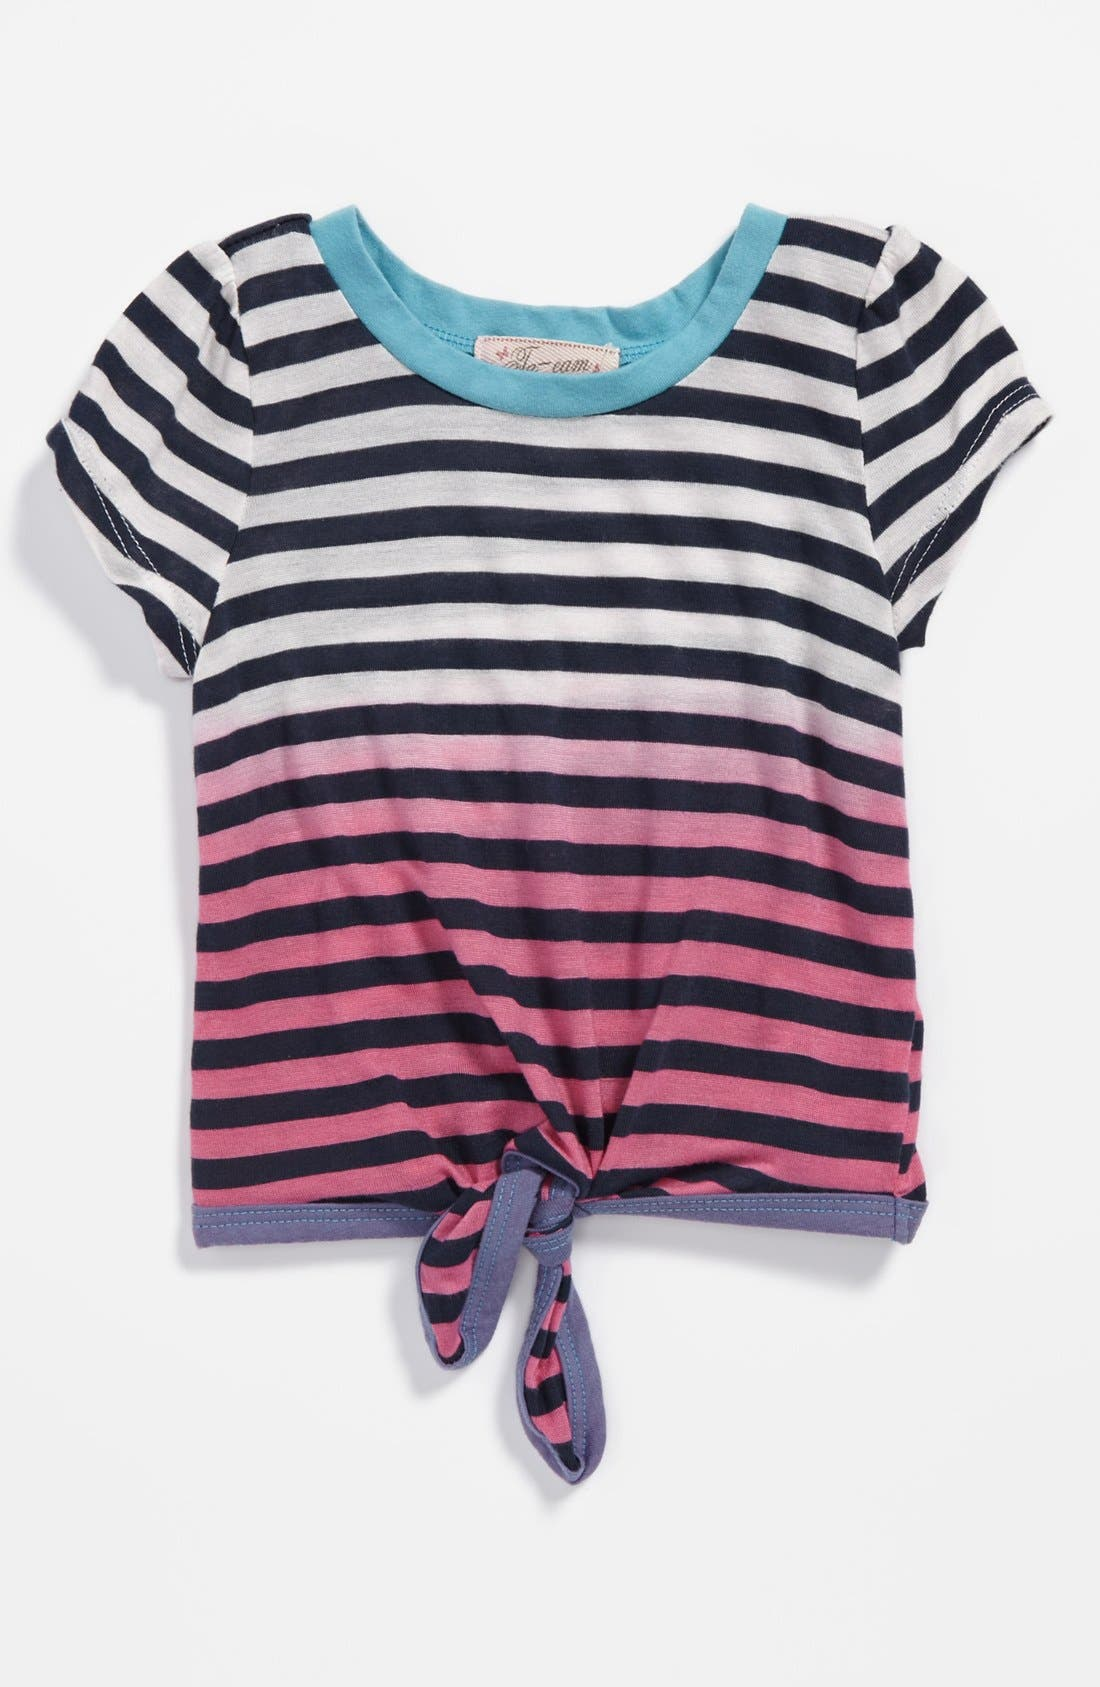 Main Image - TA-EAM Tie Front Tee (Toddler Girls)